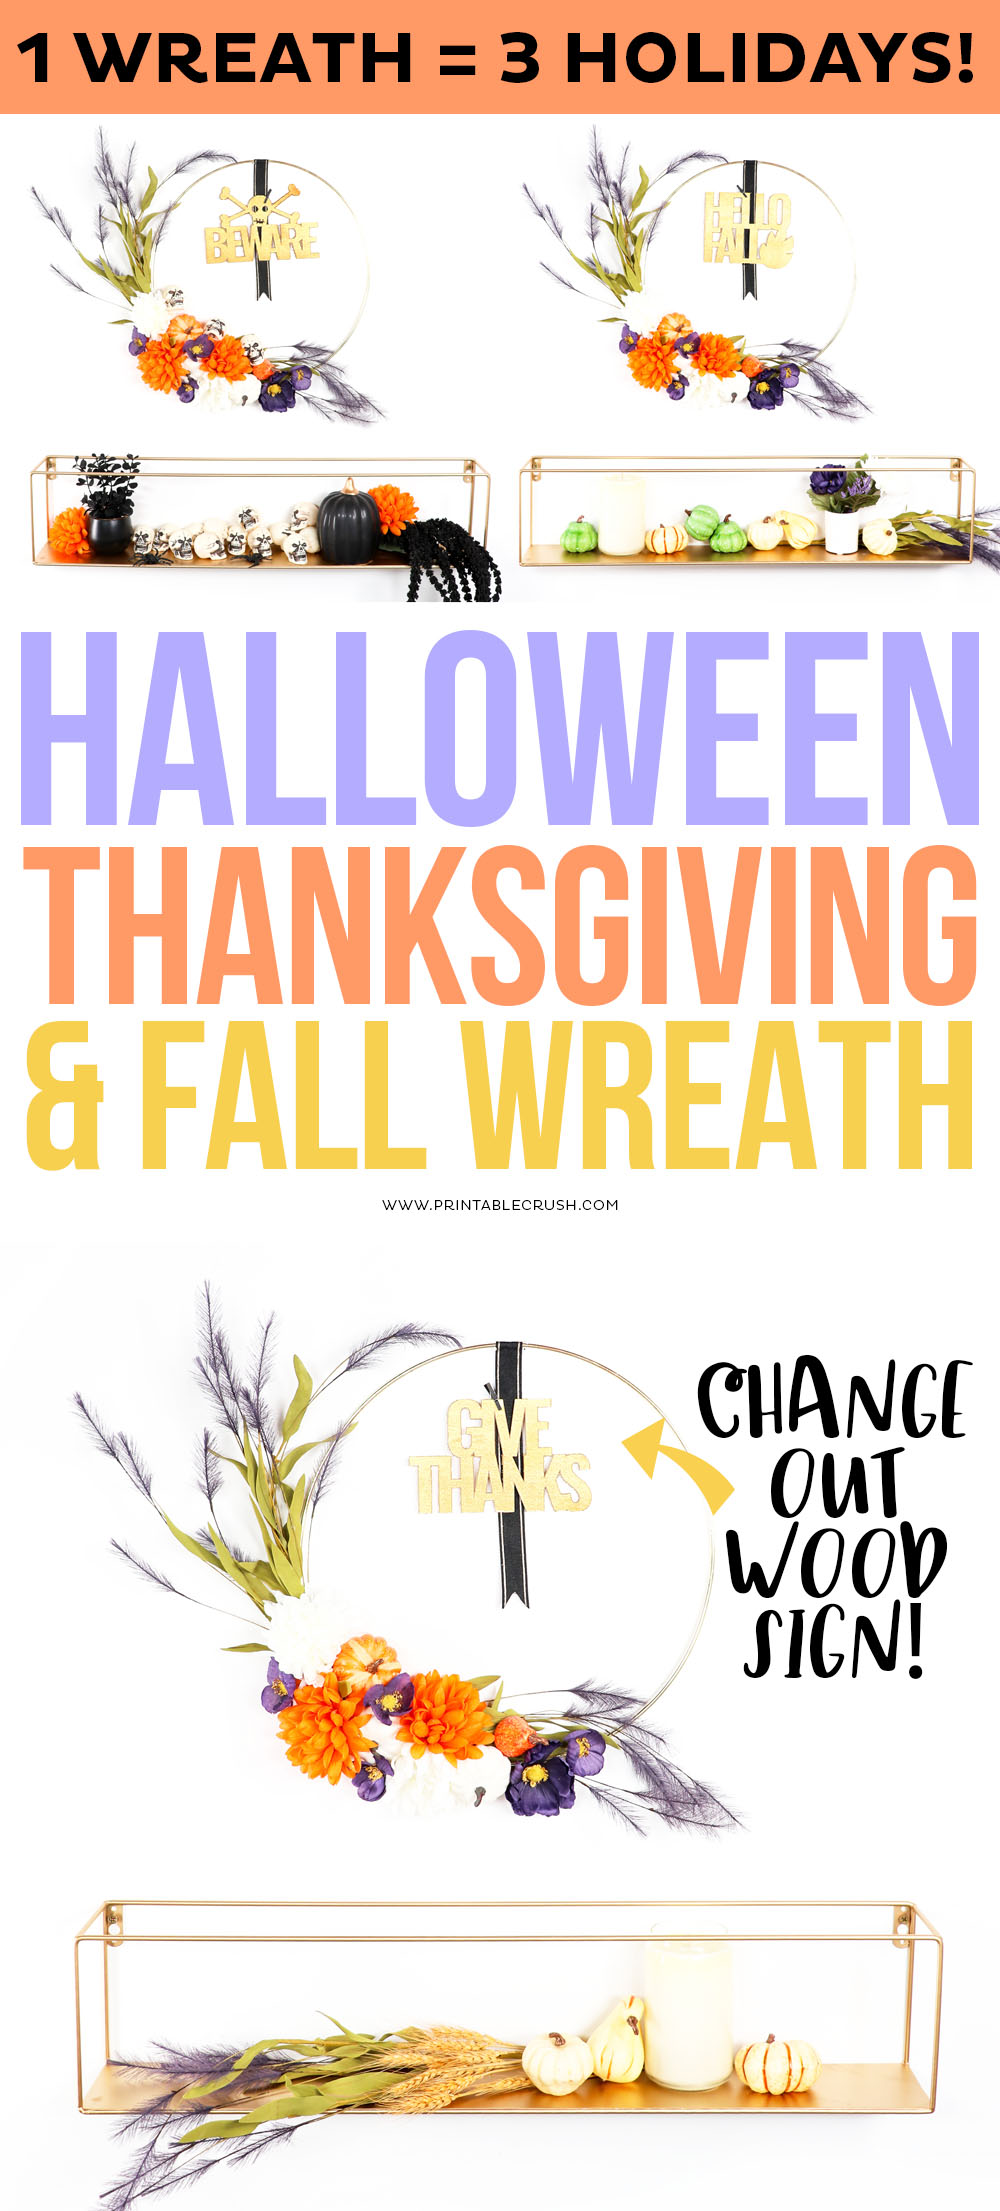 Halloween, Thanksgiving, and DIY Fall Wreath Tutorial - One Wreath for the WHOLE Fall Season! #printablecrush #fallwreath #fallcrafts #halloweenwreath #thanksgivingwreath #thanksgivingcrafts #halloweencrafts #cricutcrafts #daricecrafts via @printablecrush